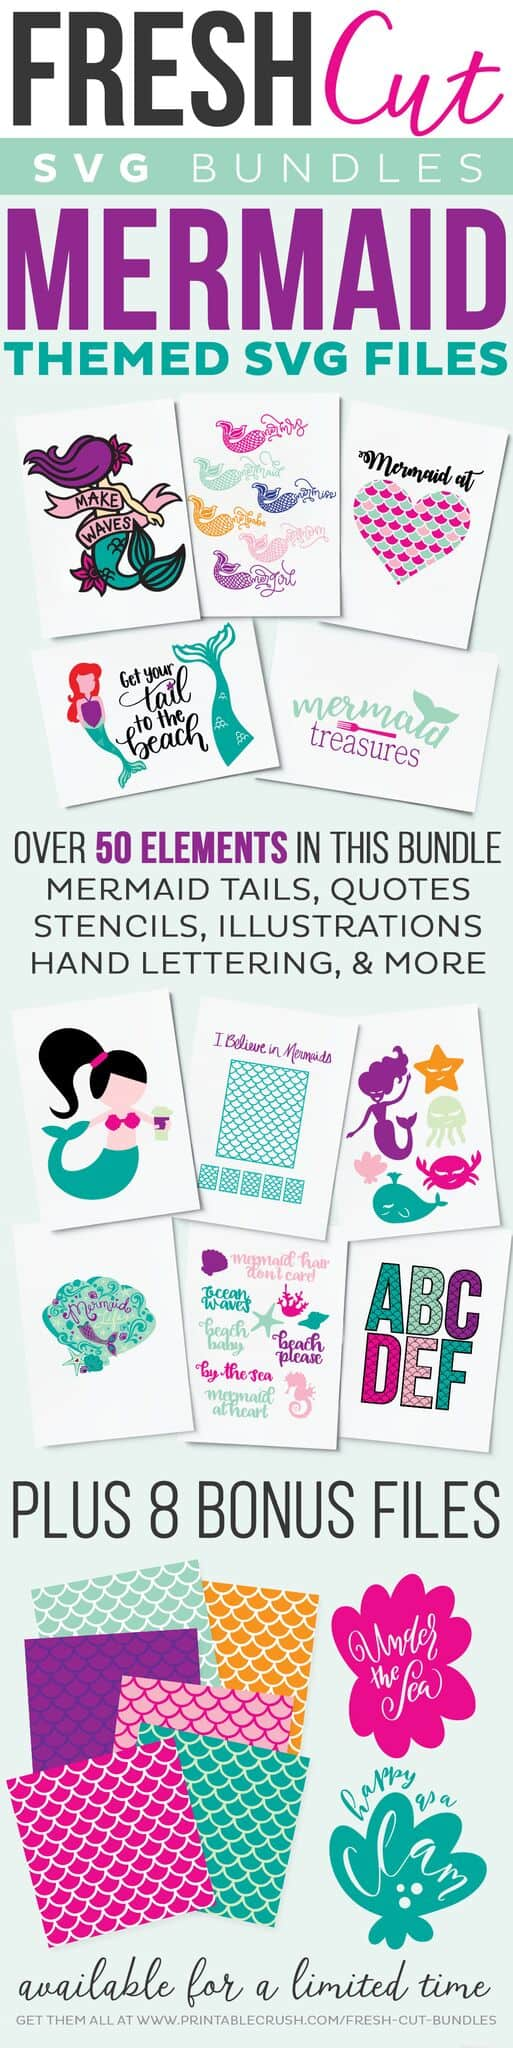 Fresh Cut SVG Bundle - Mermaid Theme!